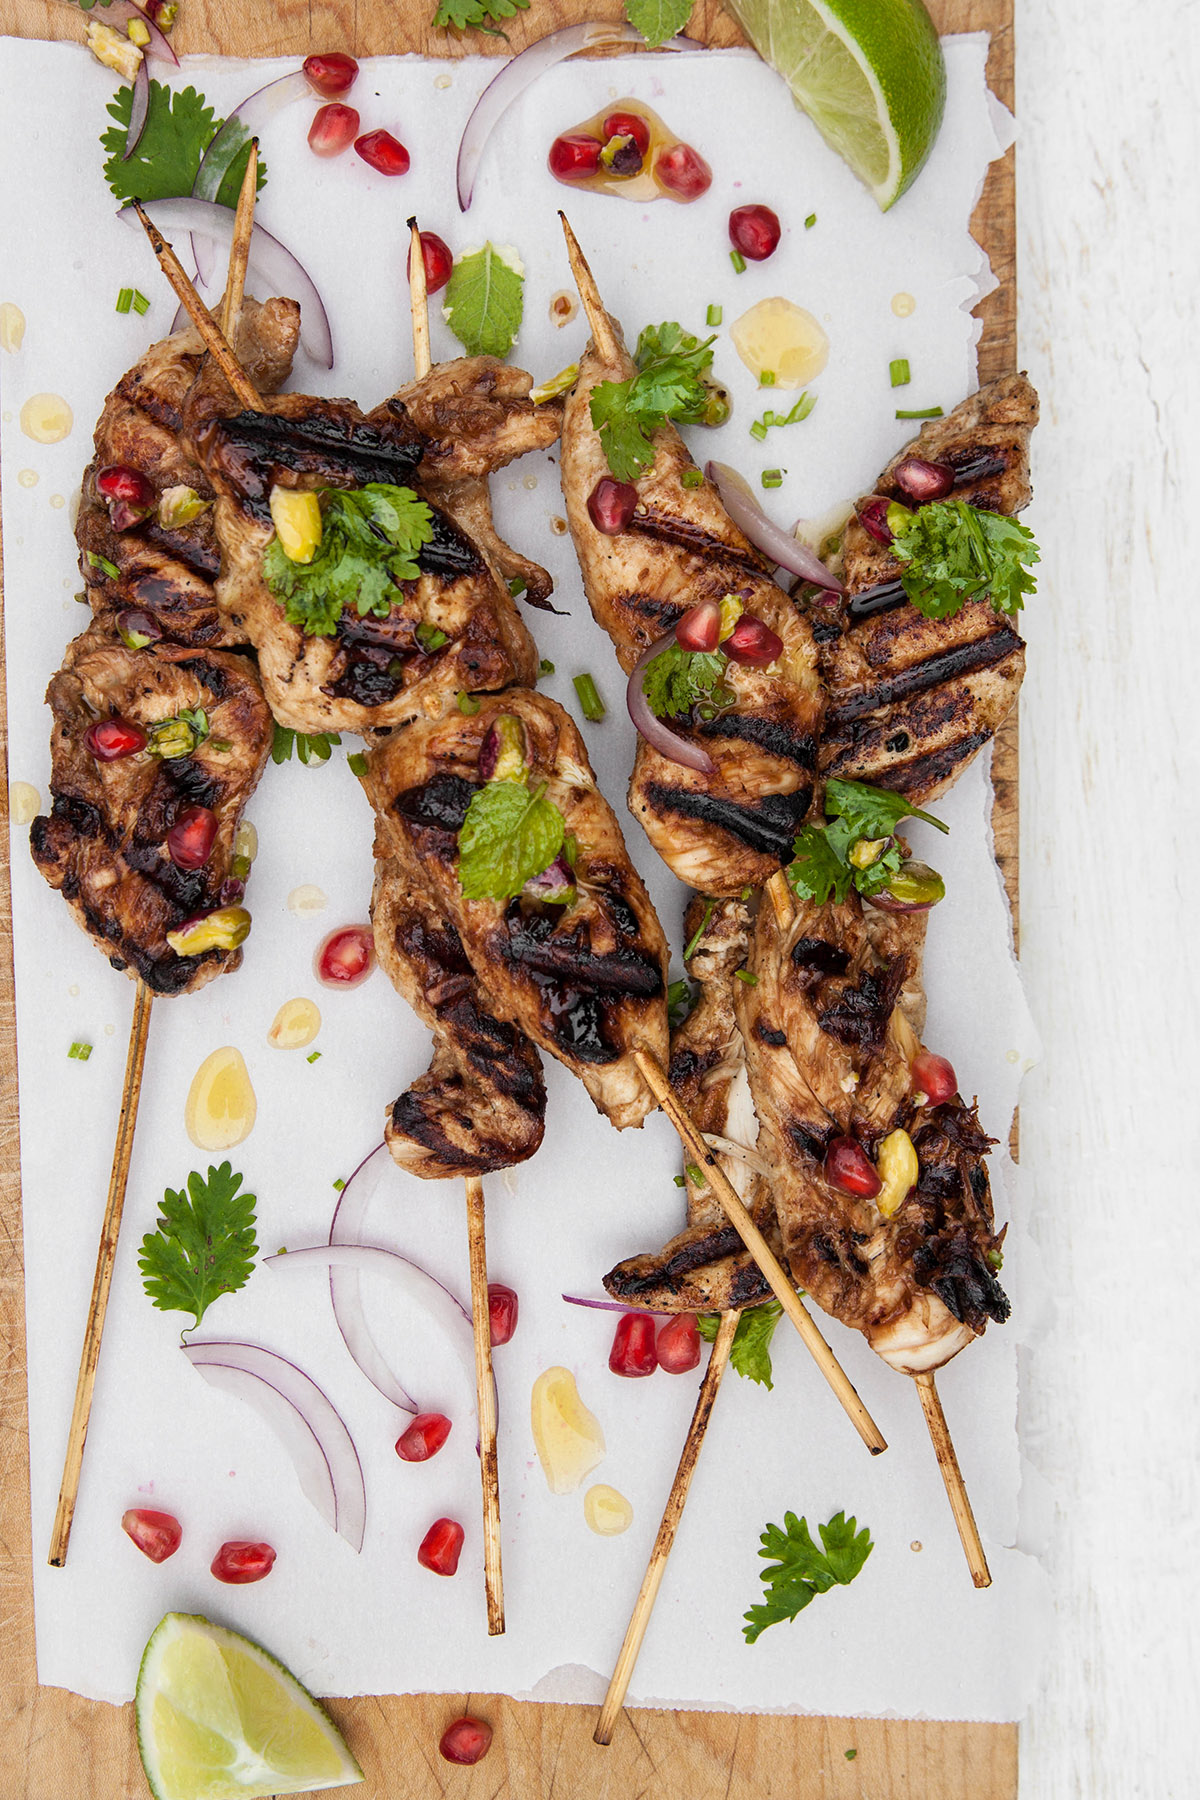 Raspberry Balsamic Glazed Chicken Skewers